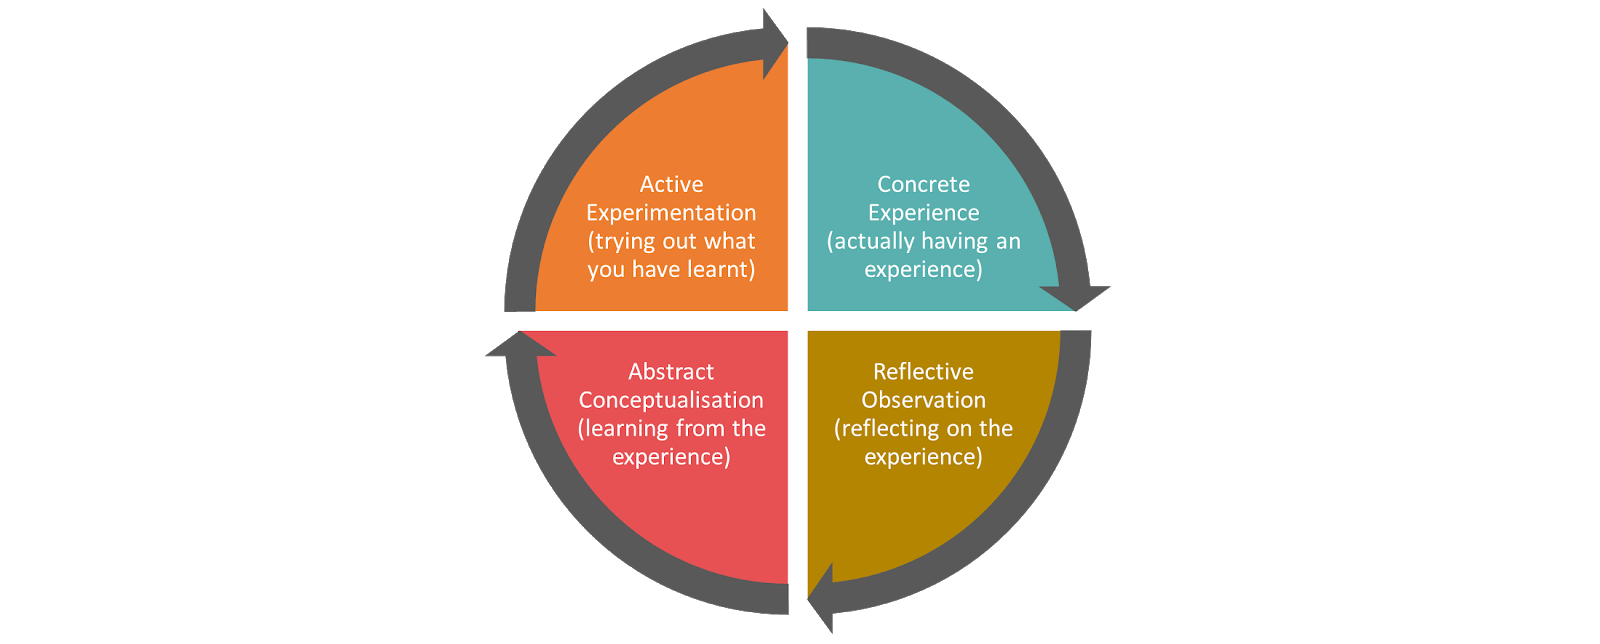 David Kolb's The Experiential Learning Cycle Model